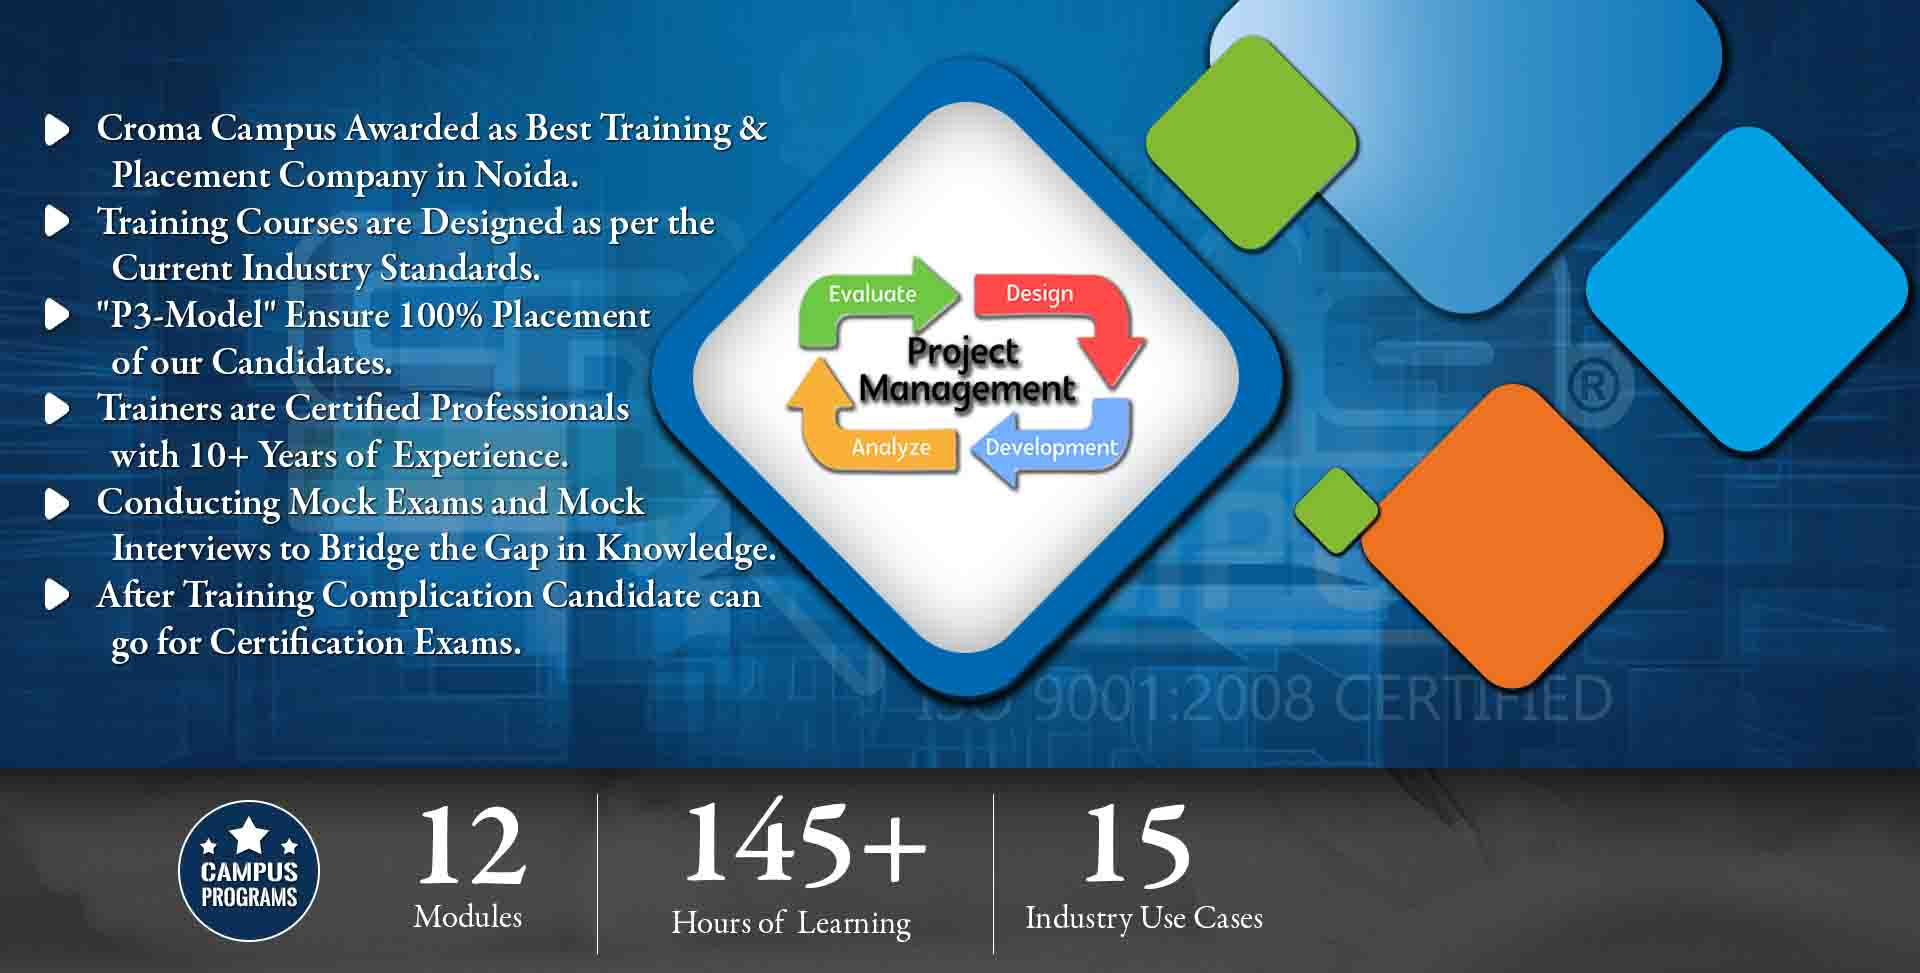 Project Management Training in Delhi NCR- Croma Campus